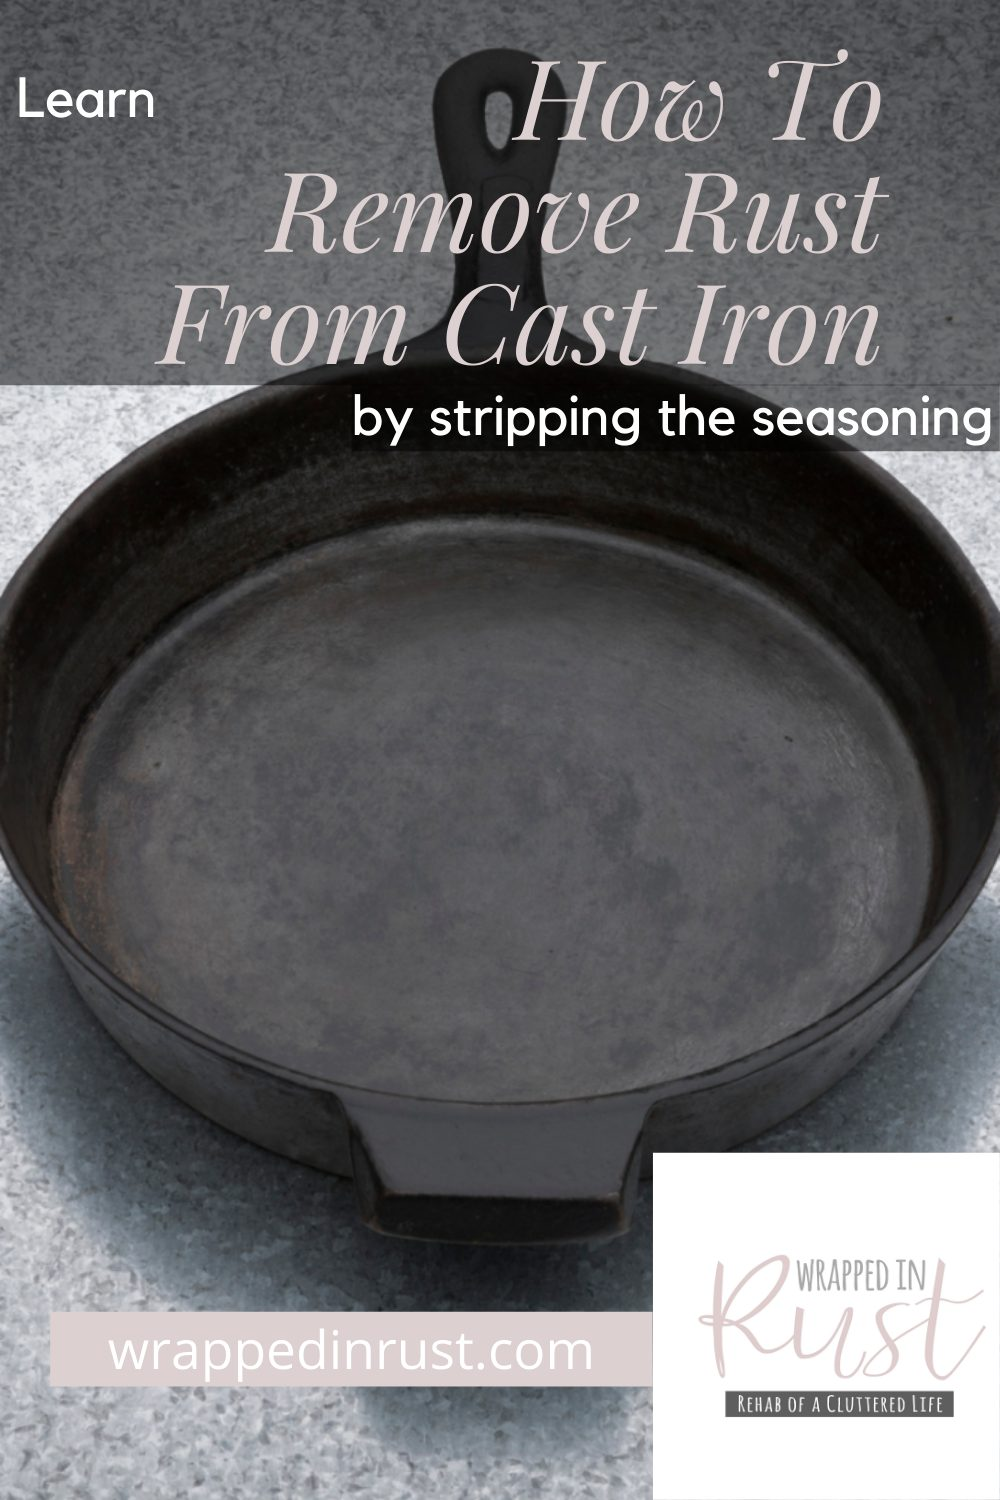 How to remove rust from cast iron and restore it to a pristine state. No cast iron is too far gone! See how easy it is to save it before you toss it out. #wrappedinrustblog #howtoremoverustfromcastiron